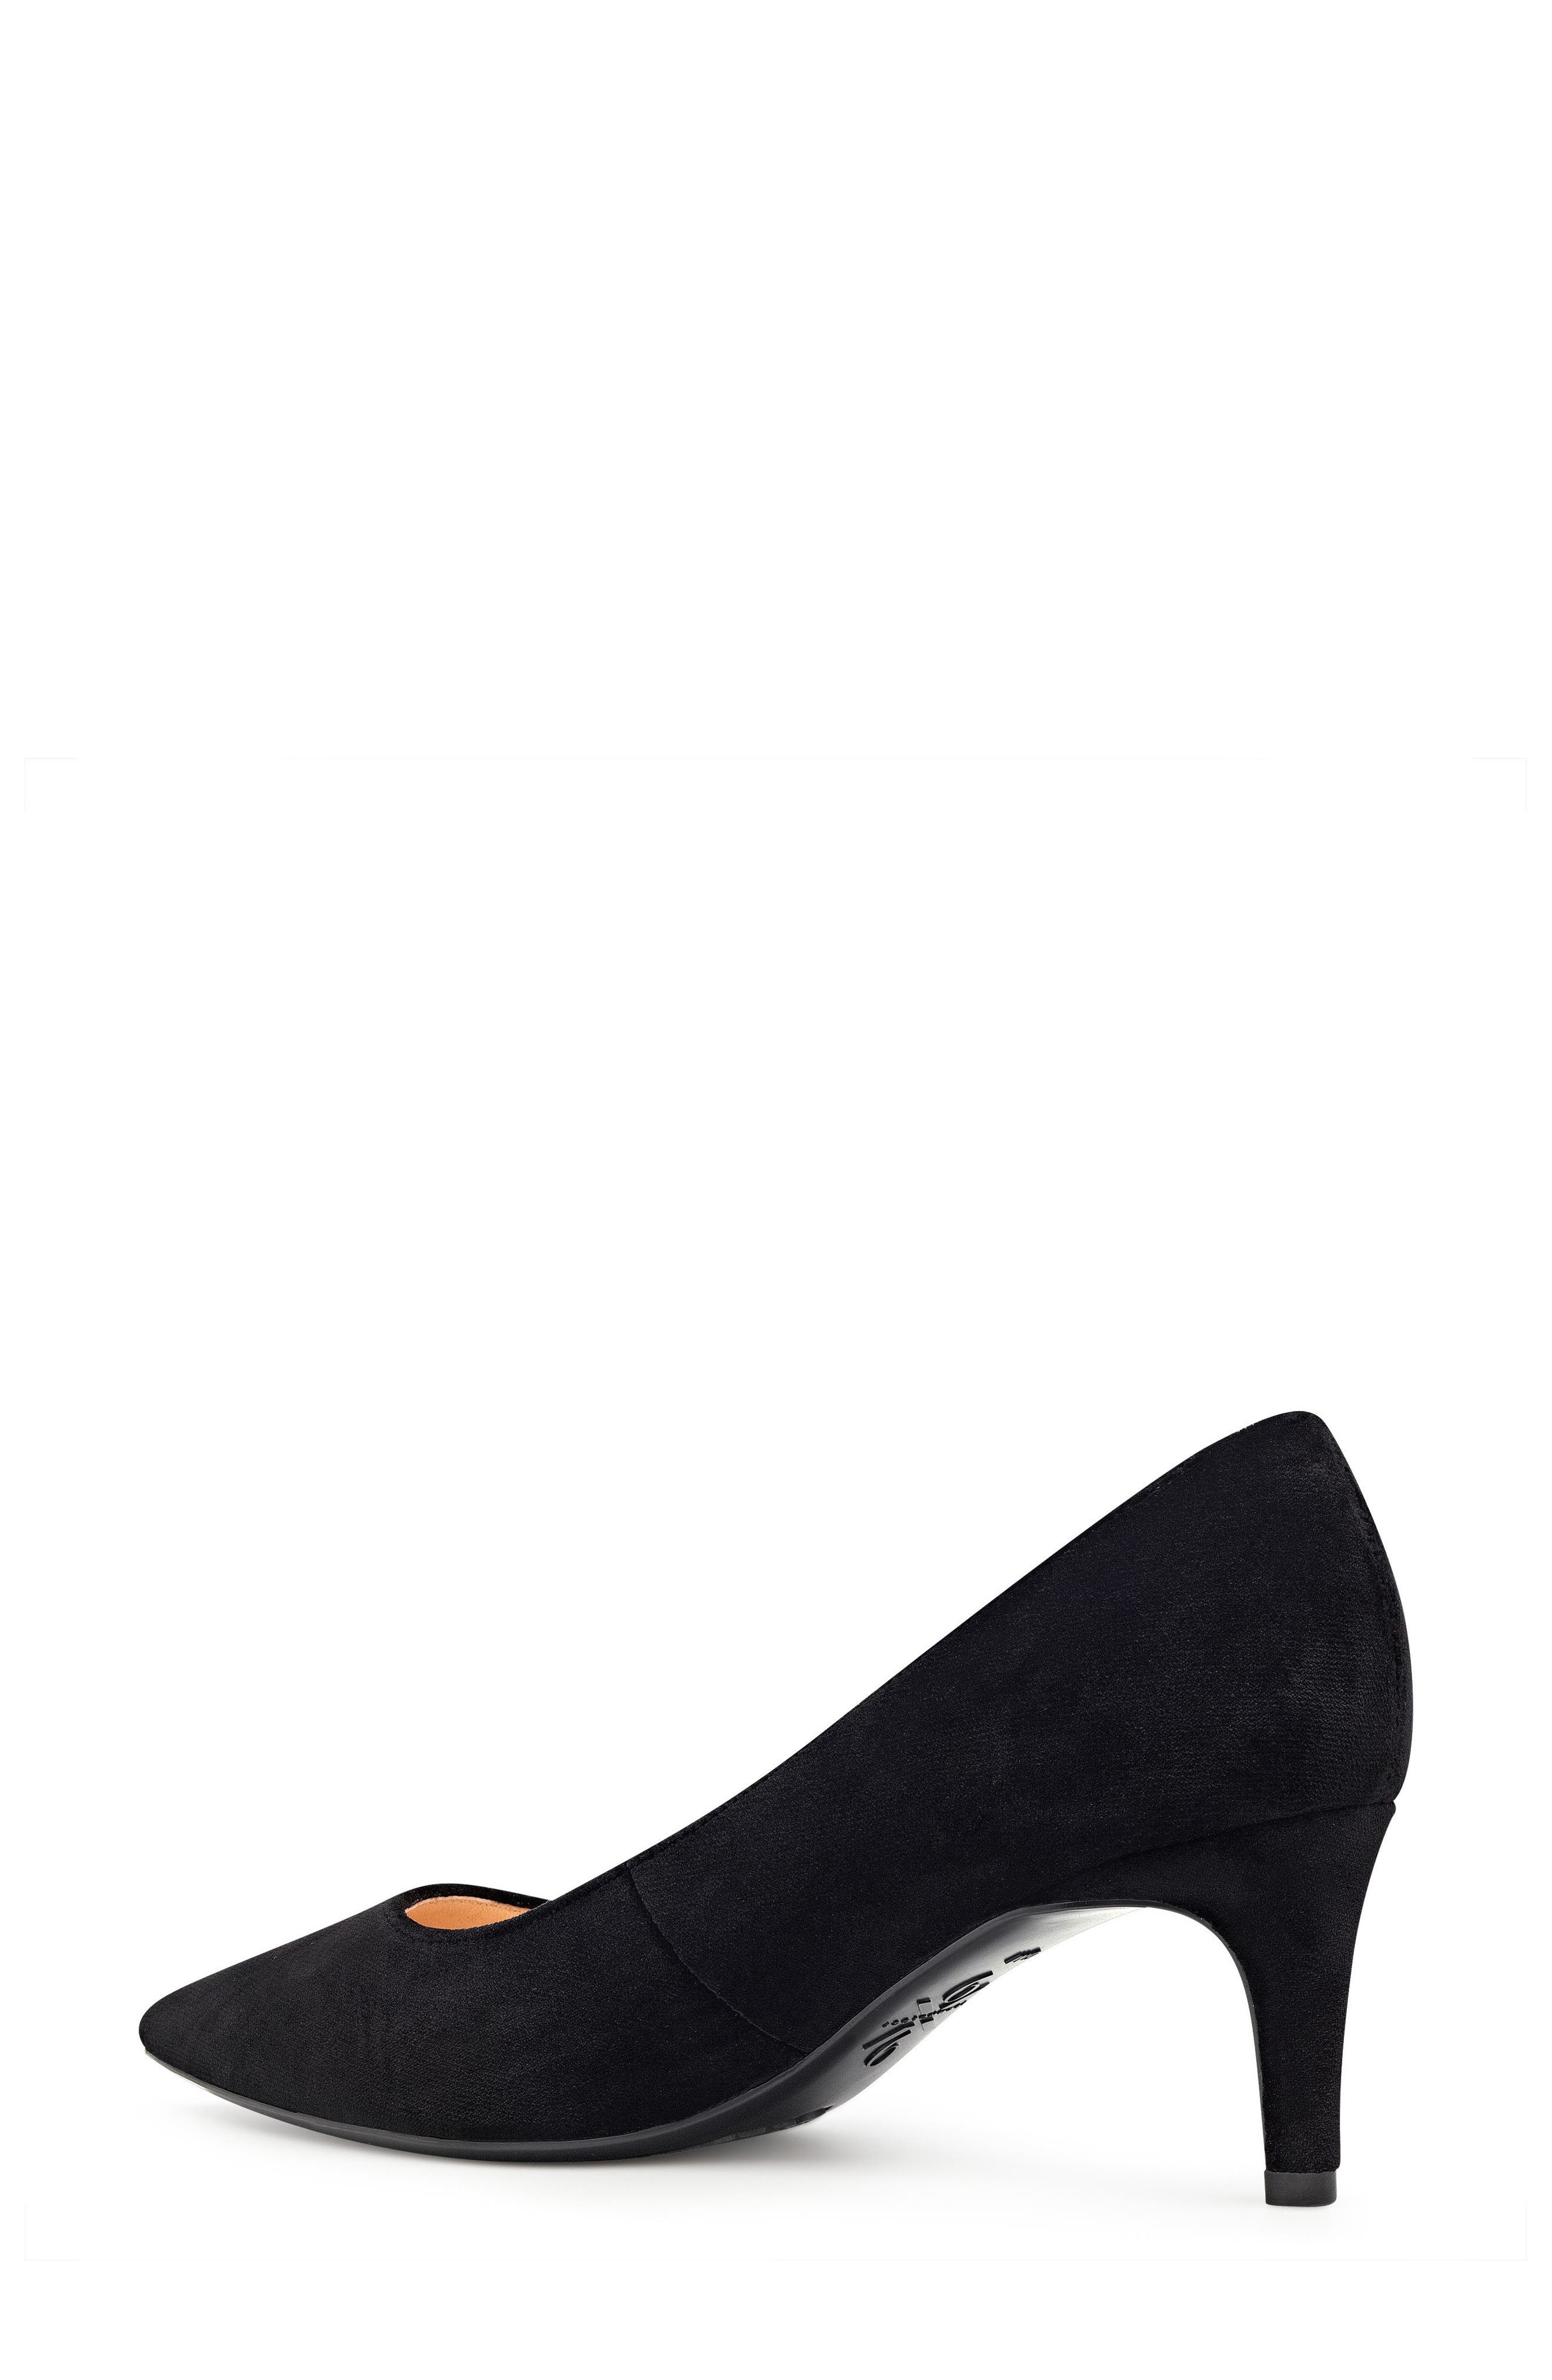 Soho Pointy Toe Pump,                             Alternate thumbnail 14, color,